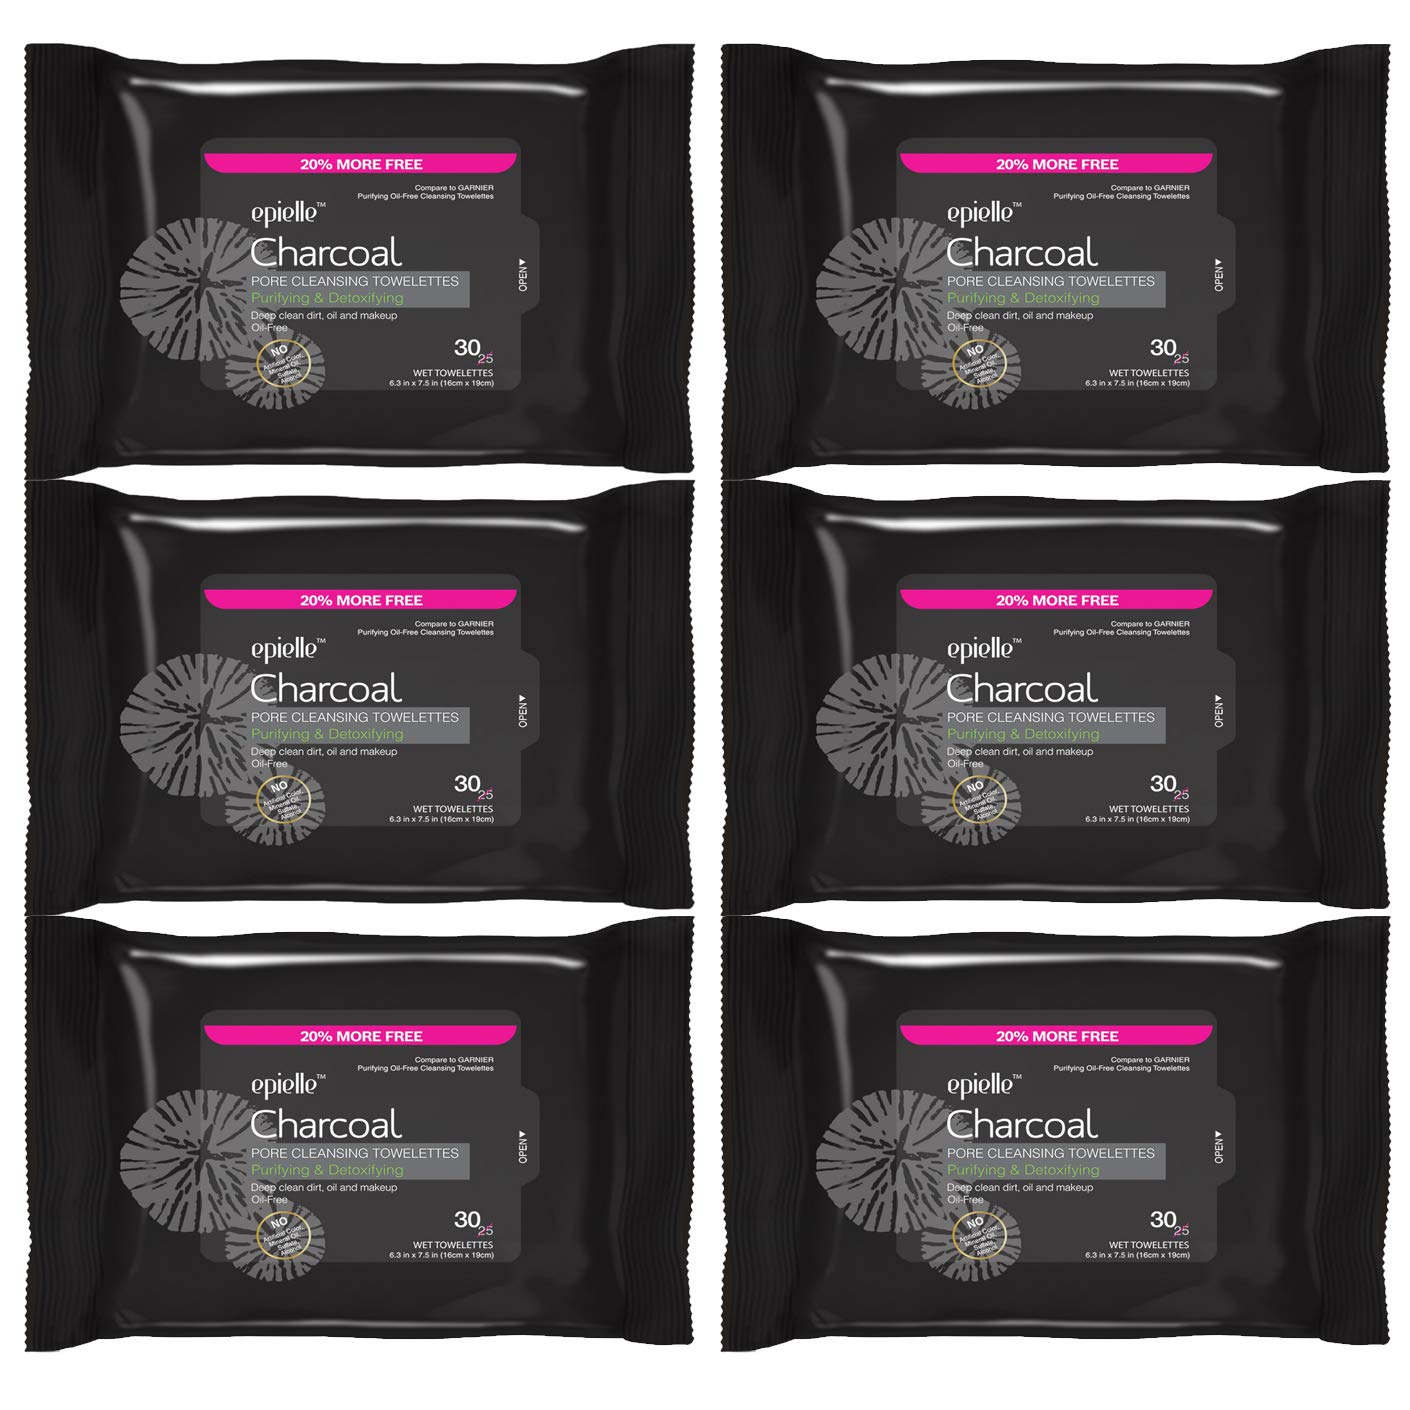 Epielle Charcoal Pore Cleansing Facial Tissues Wipes Towelettes - 30ct (Sheets) per pack, Total 6 packs